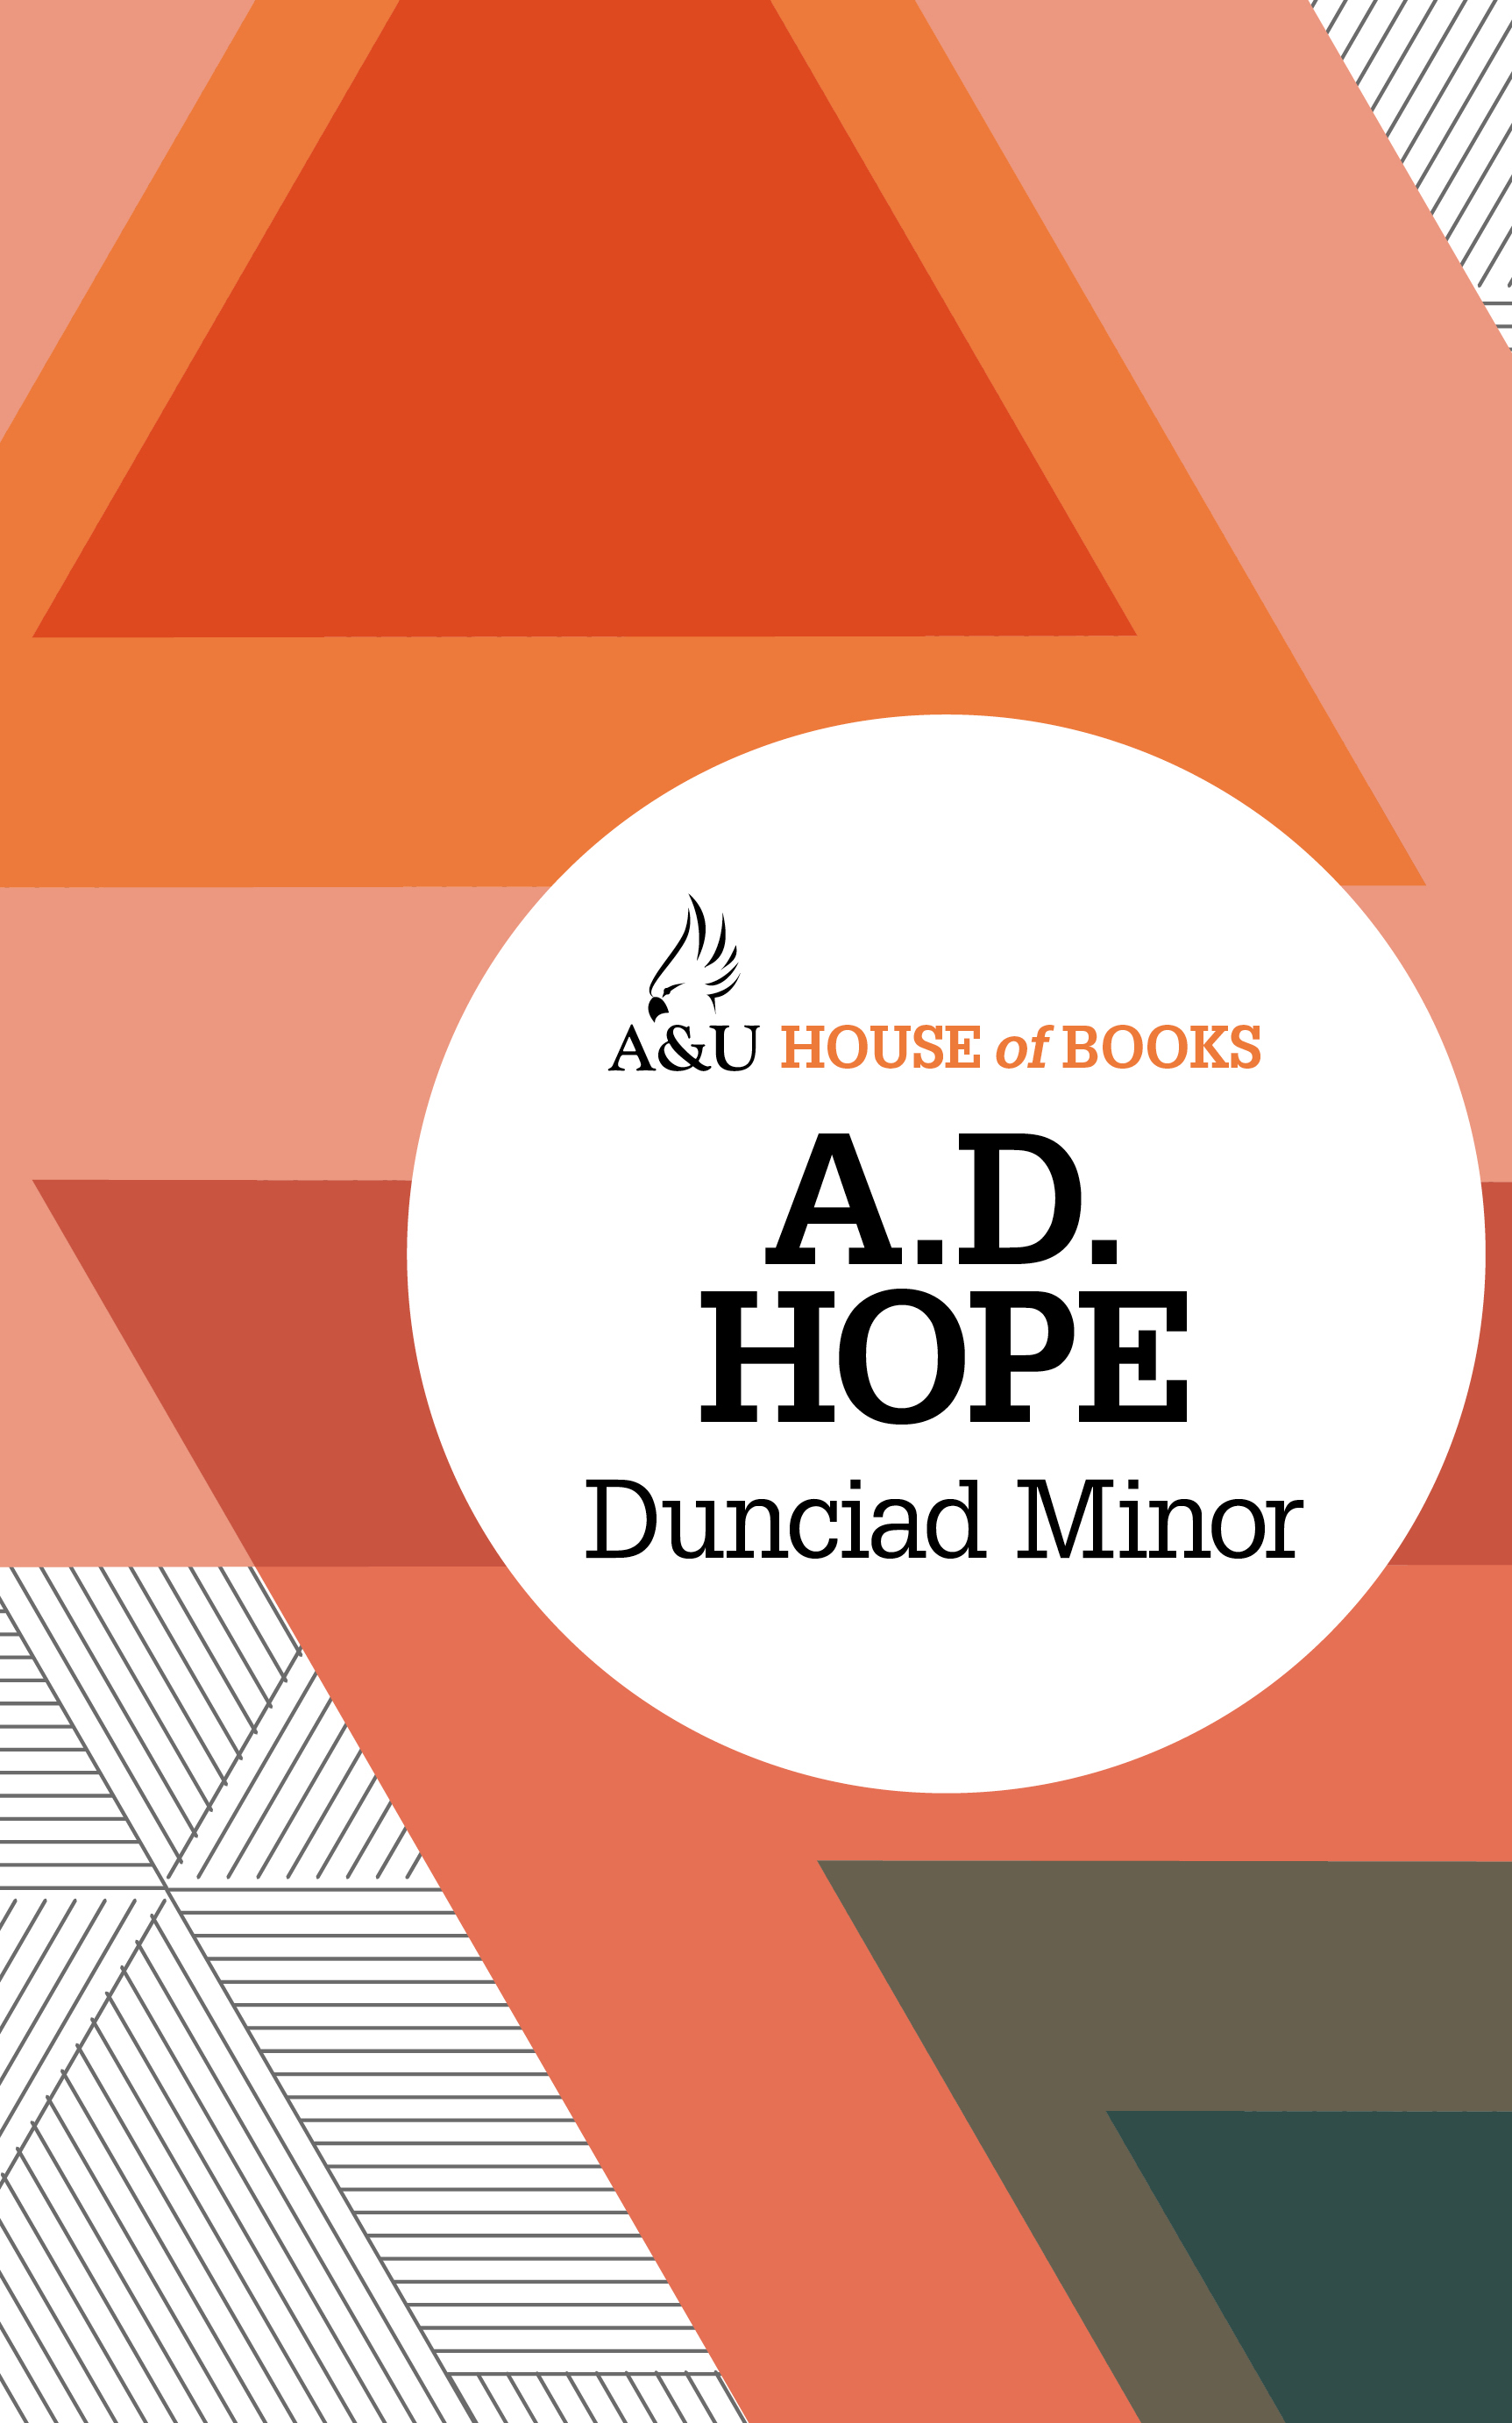 australia by a d hope Australian poet alec derwent hope (1907-2000), better known as ad hope, is  one of those well-known poets whom i'd never before heard of.